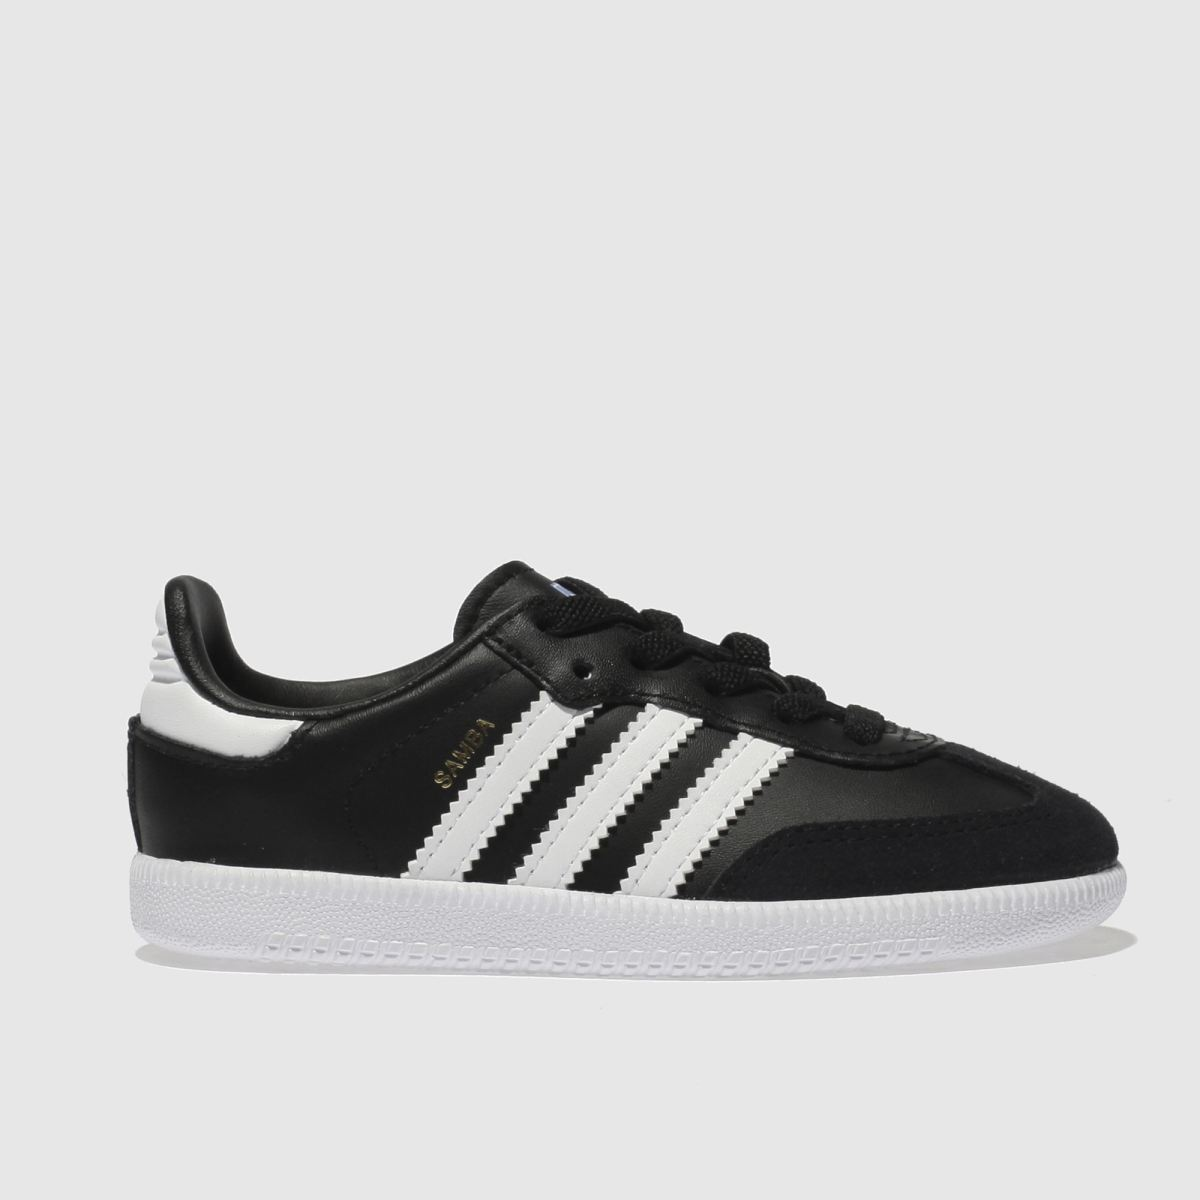 Adidas Black & White Samba Og El Trainers Toddler